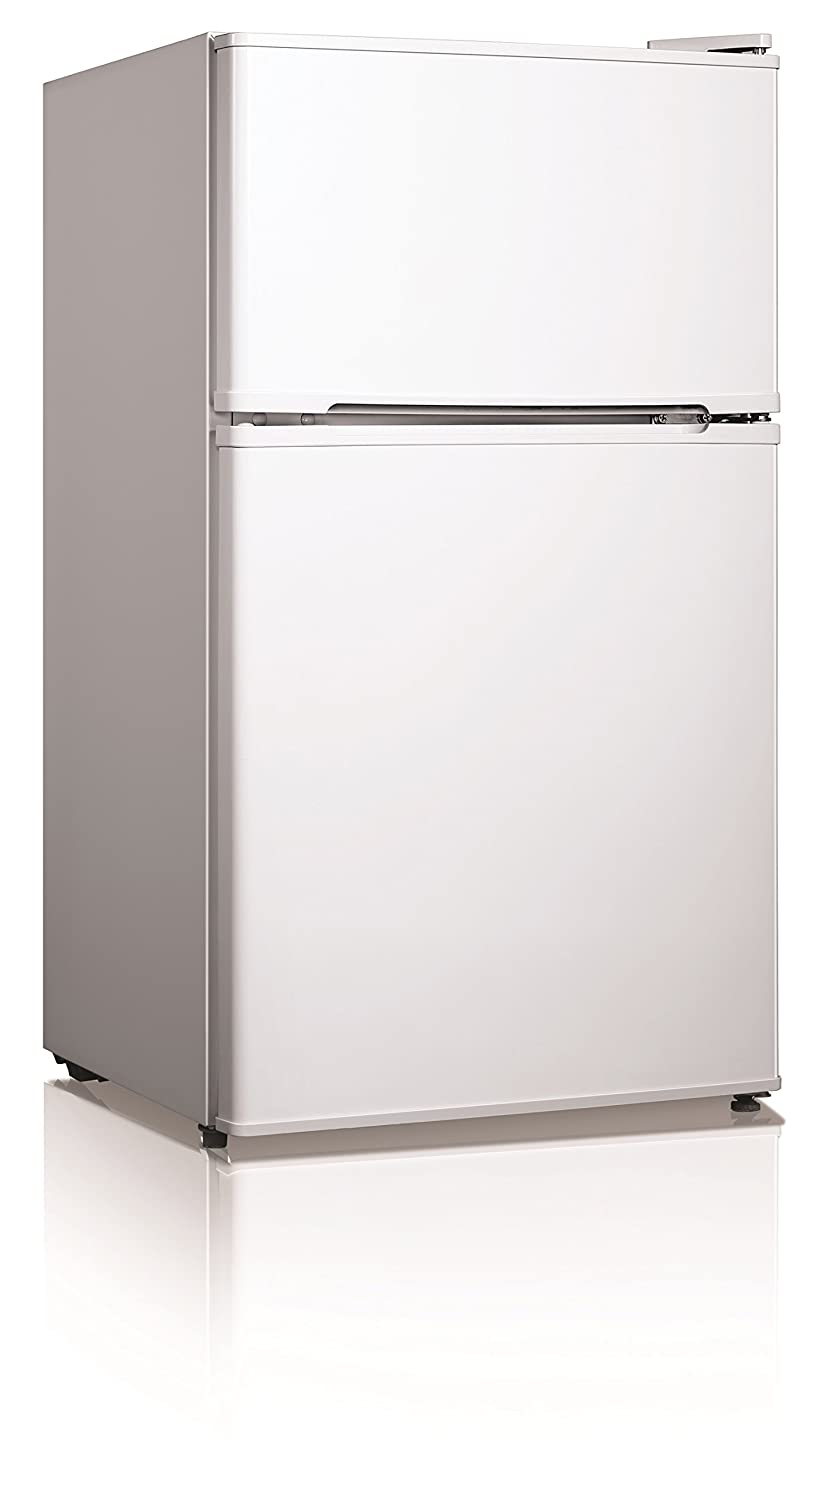 Midea WHD-125FW1 Compact Reversible Double Door Refrigerator, 3.4 Cubic Feet, White